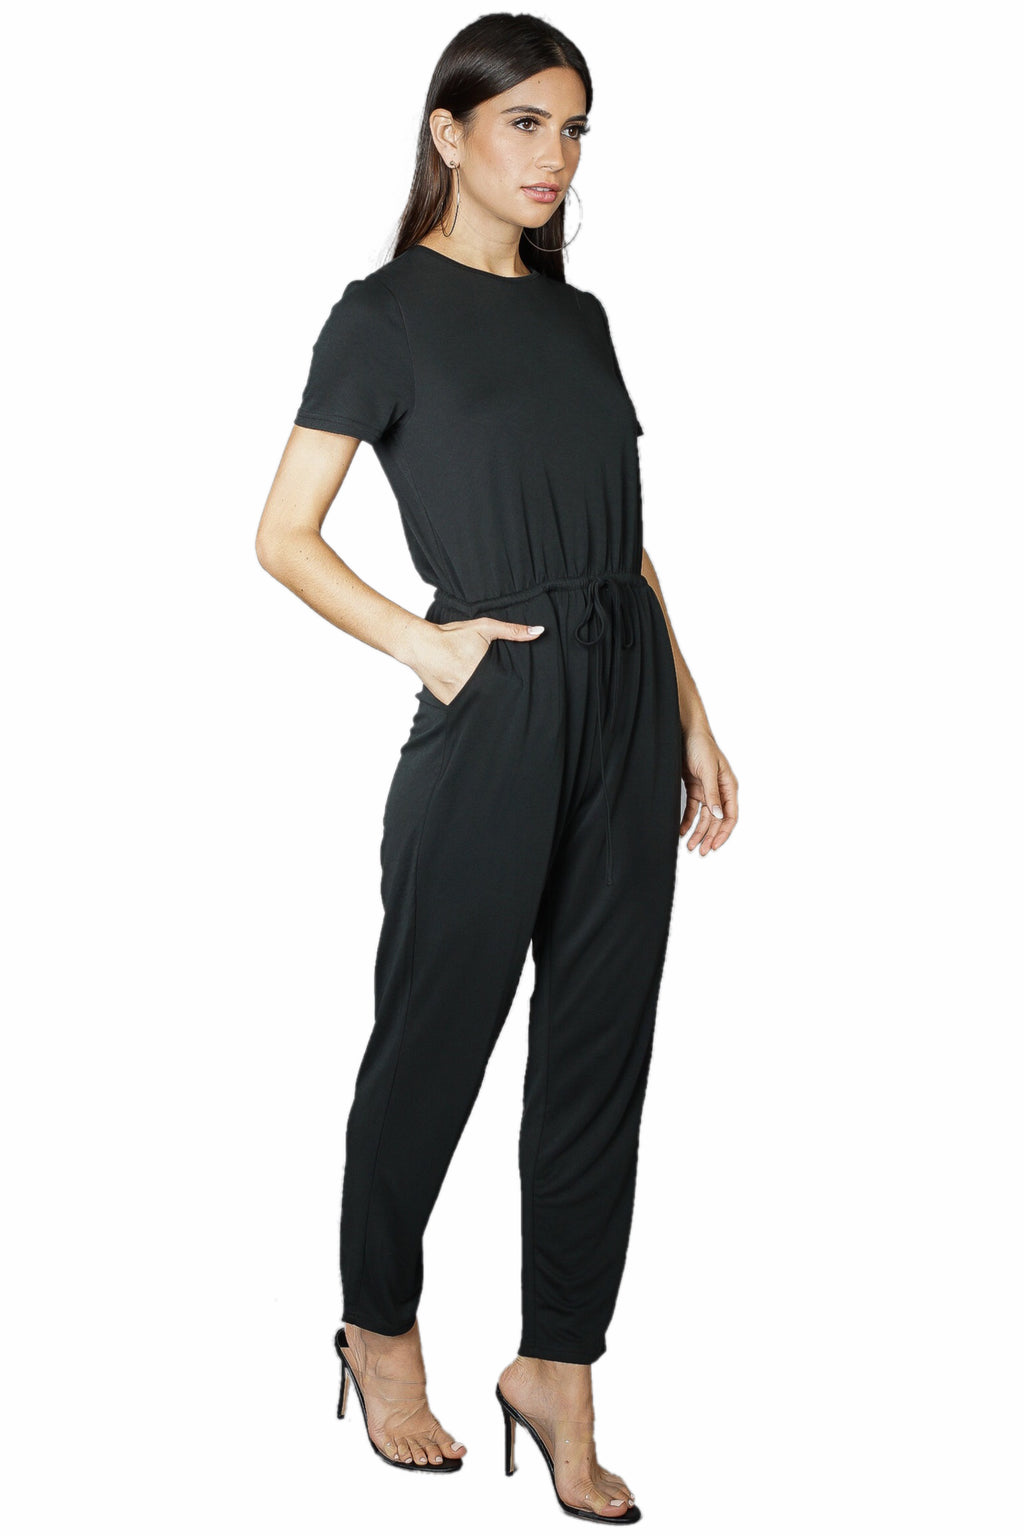 The Good Jane Franco Jumpsuit